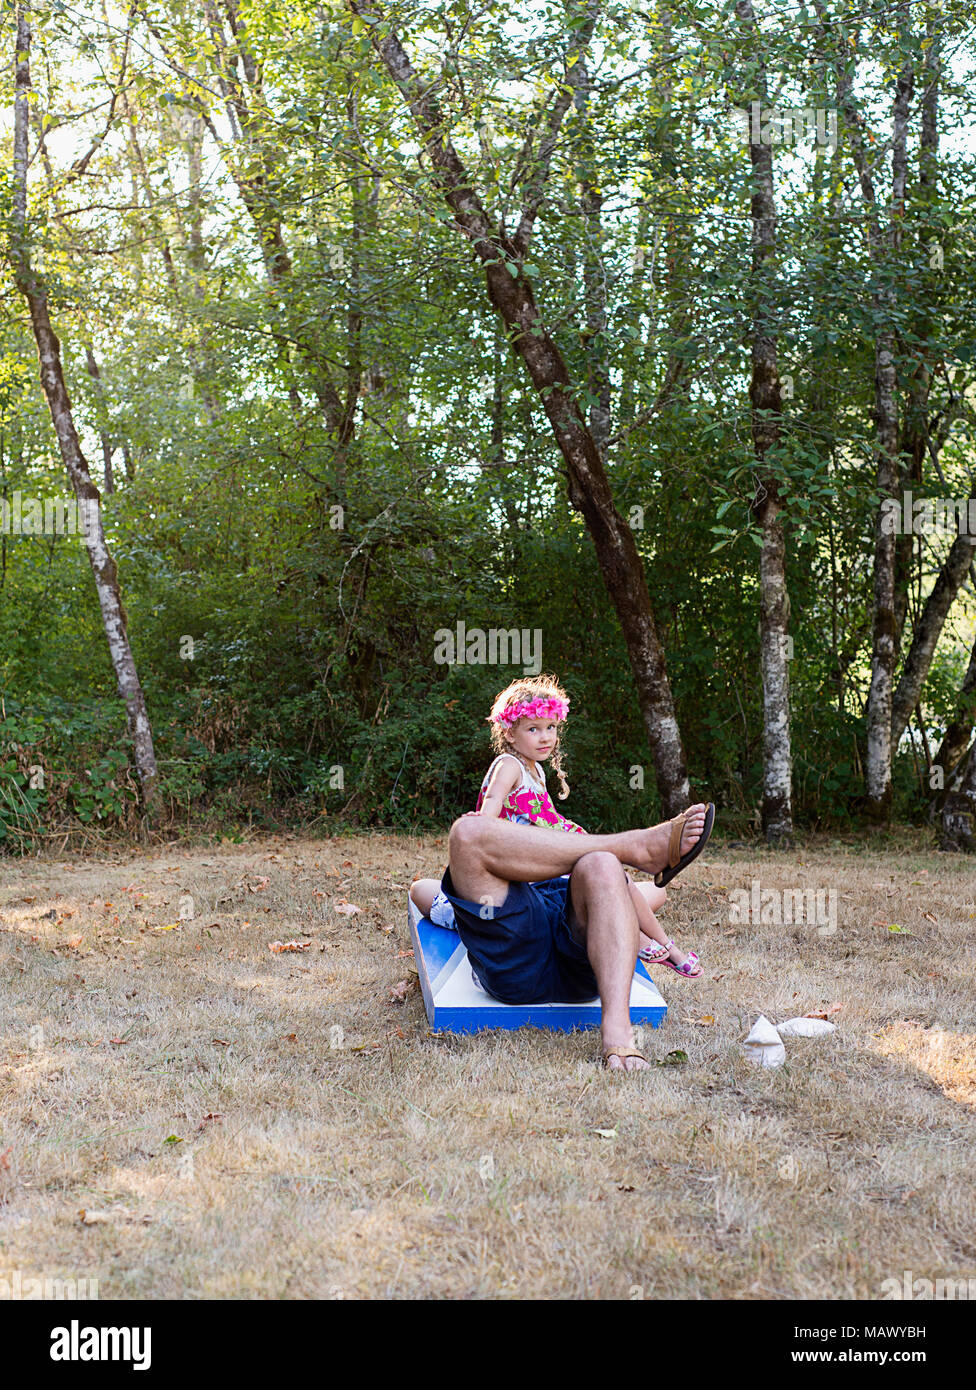 A young girl sitting on her dad. - Stock Image